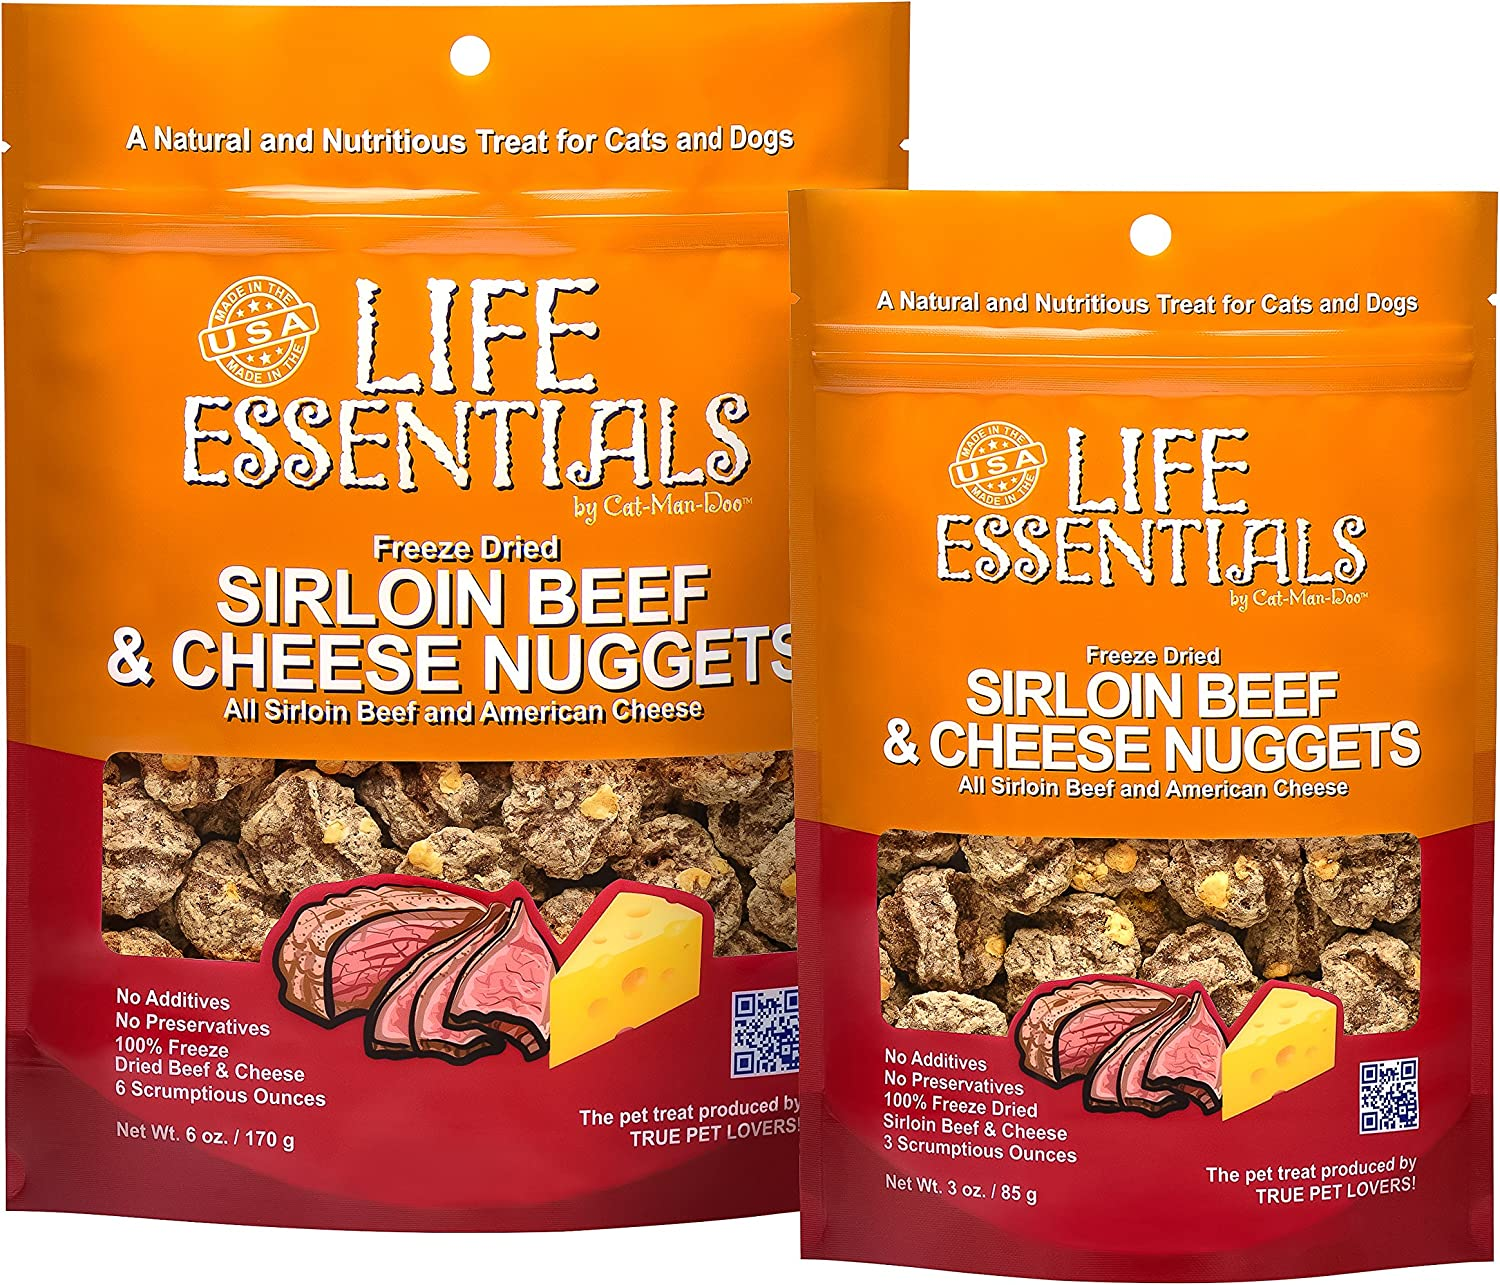 Life Essentials by Cat-Man-Doo Freeze Dried Sirloin Beef, Sirloin Beef Cheese Nugget Dog Treats – 3 oz, 6 oz